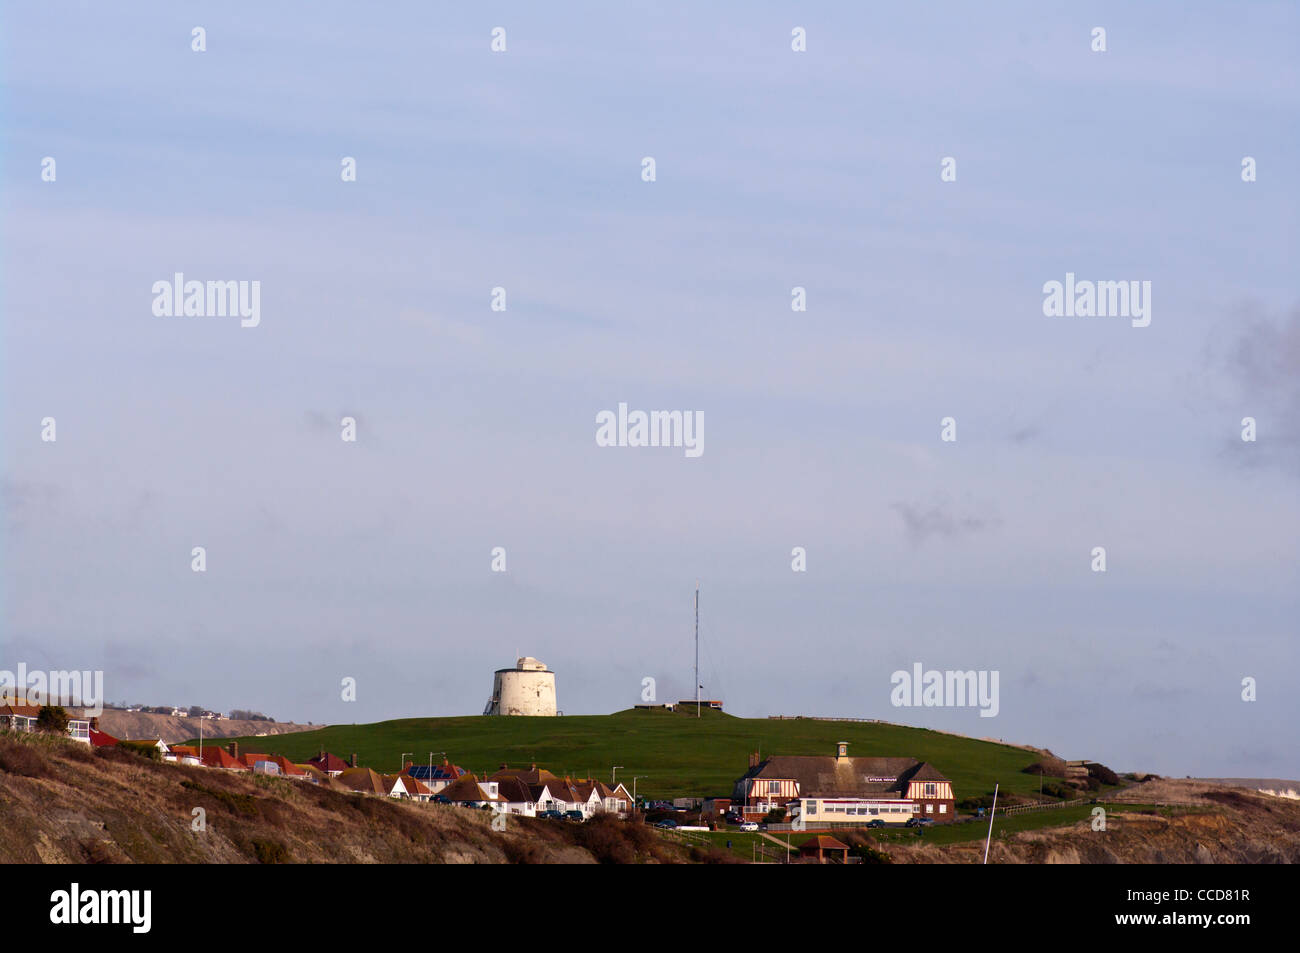 Martello Tower Number Three 3 On The Clifftops Overlooking The Coastal Town Of Folkestone Kent UK Towns - Stock Image